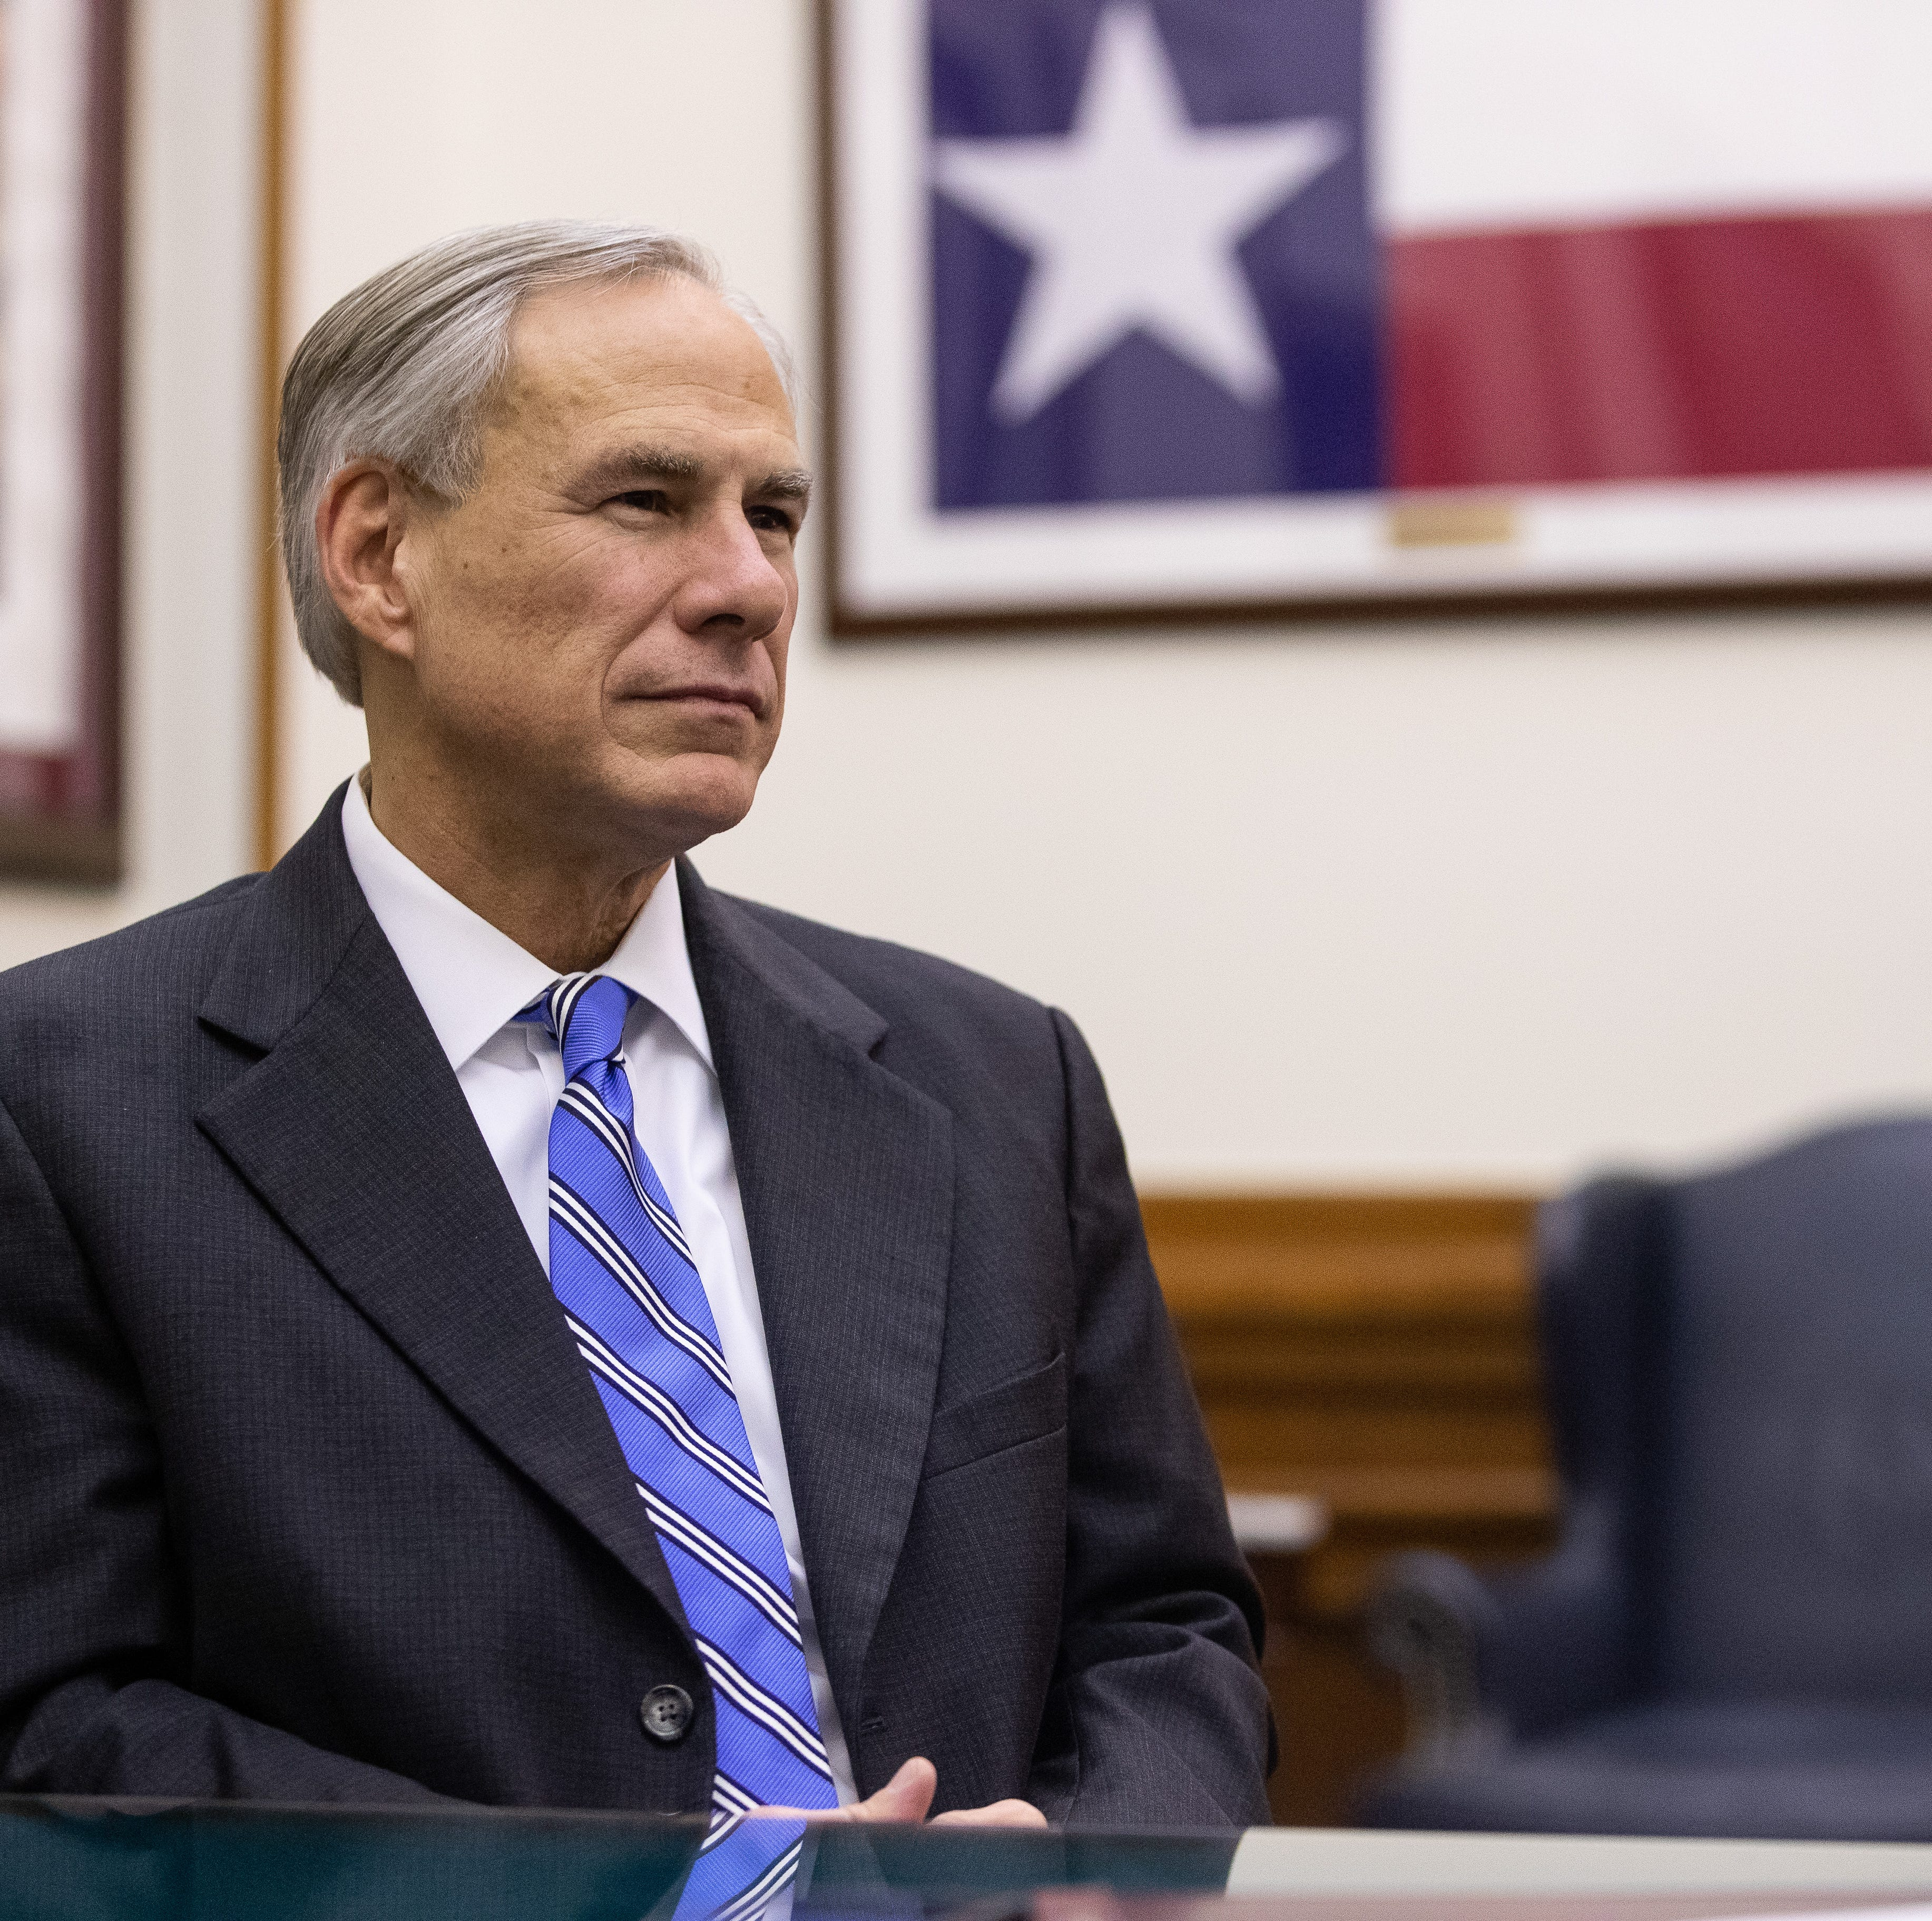 Texas Gov. Greg Abbott: Overcoming personal adversity shaped leadership in times of crisis